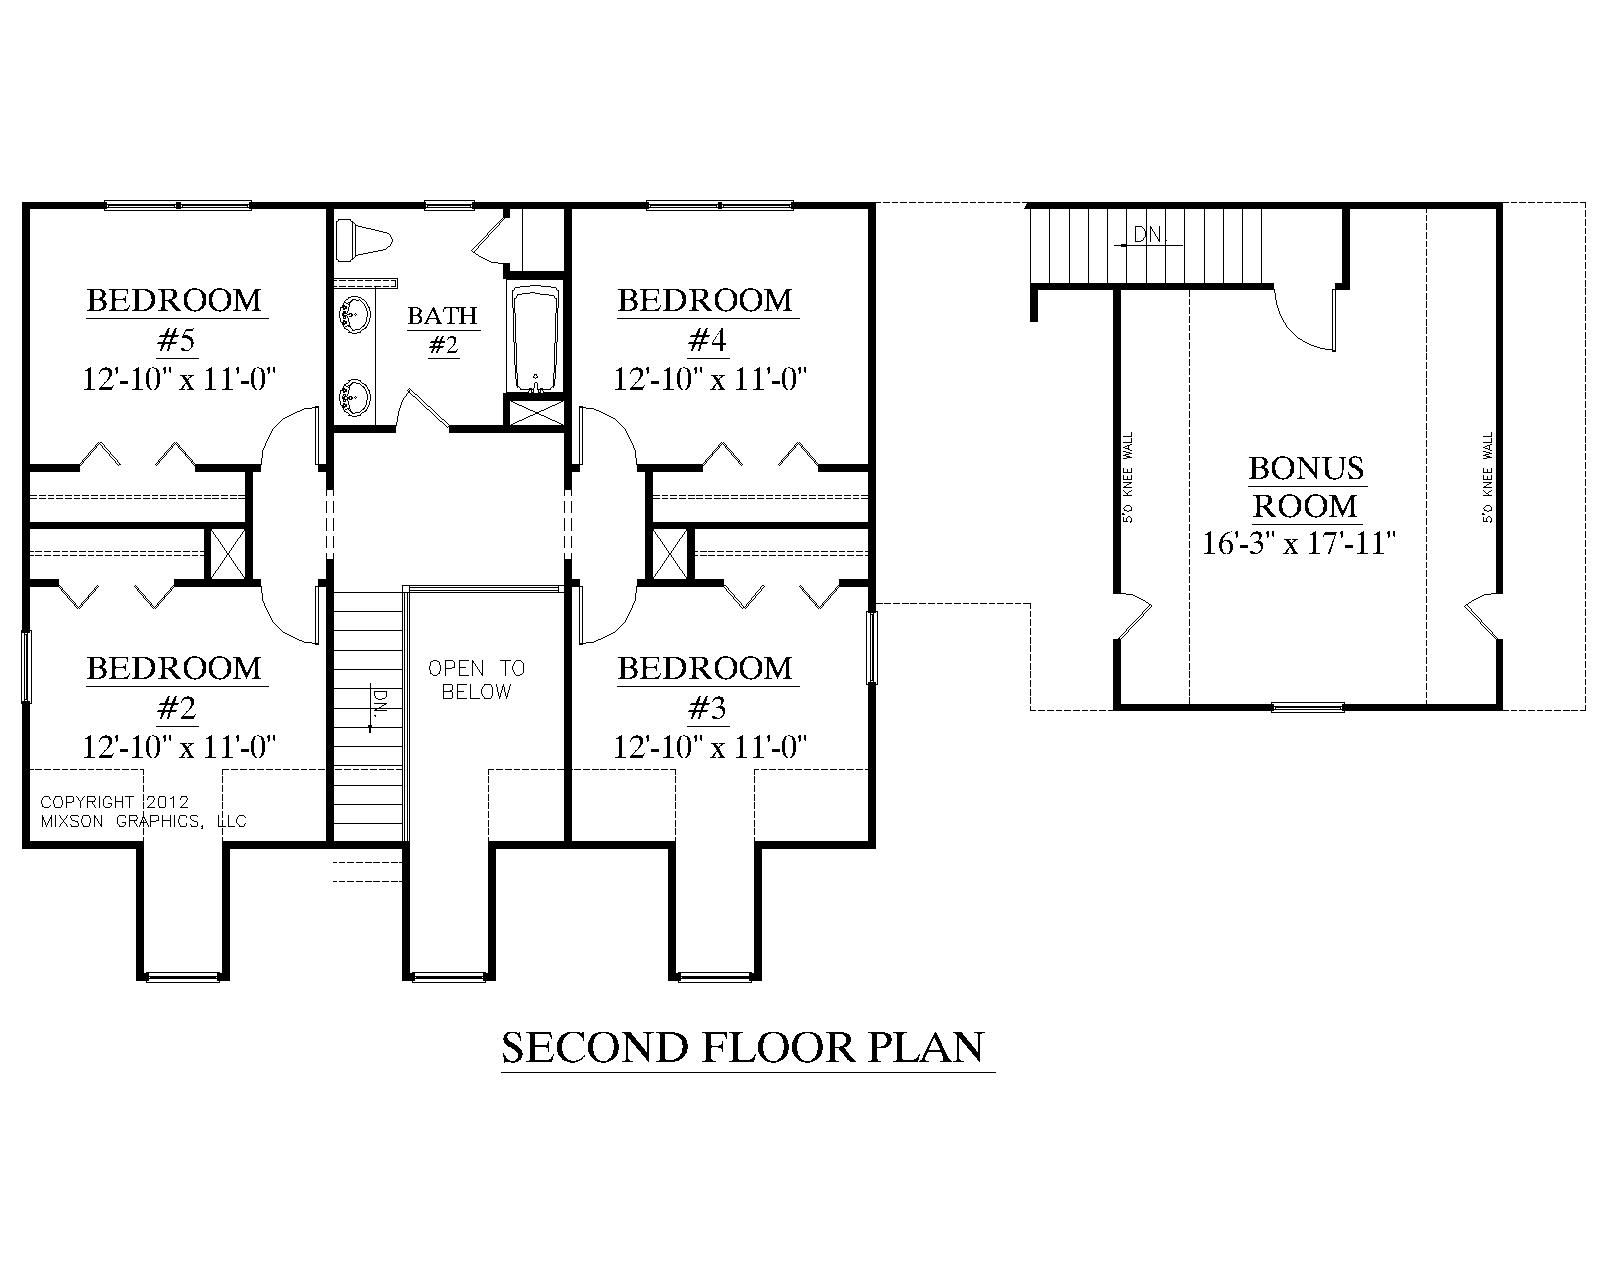 House plan 2341 a montgomery a second floor plan 1 1 2 story cottage plans